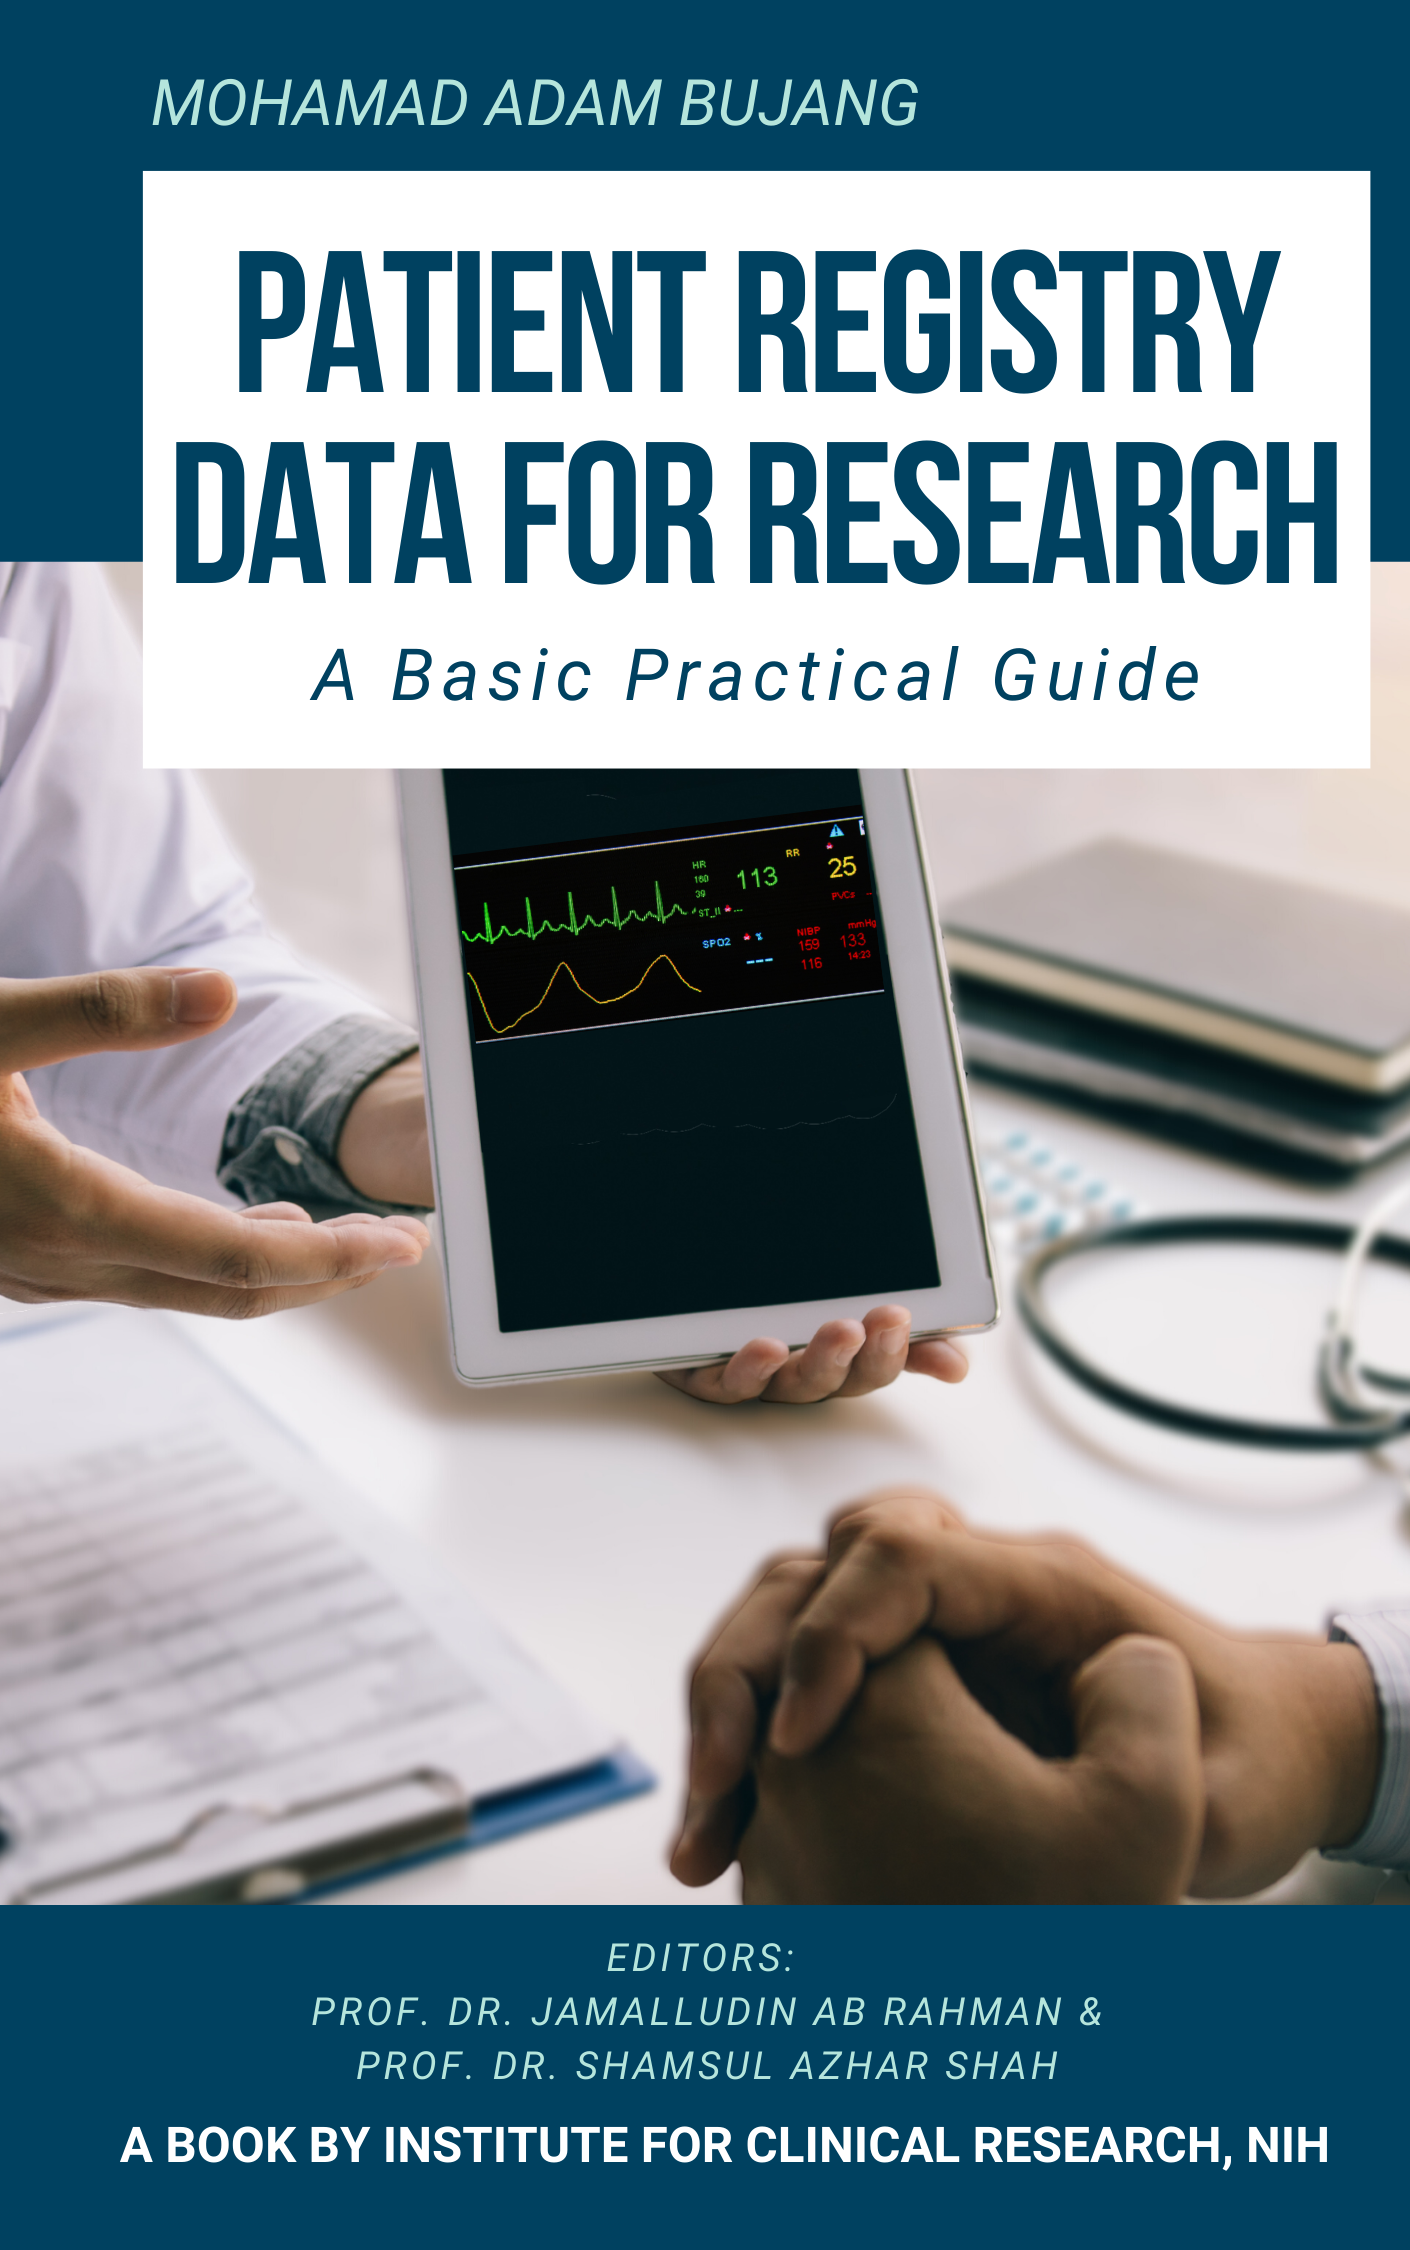 Patient Registry Data for Research: A Basic Practical Guide